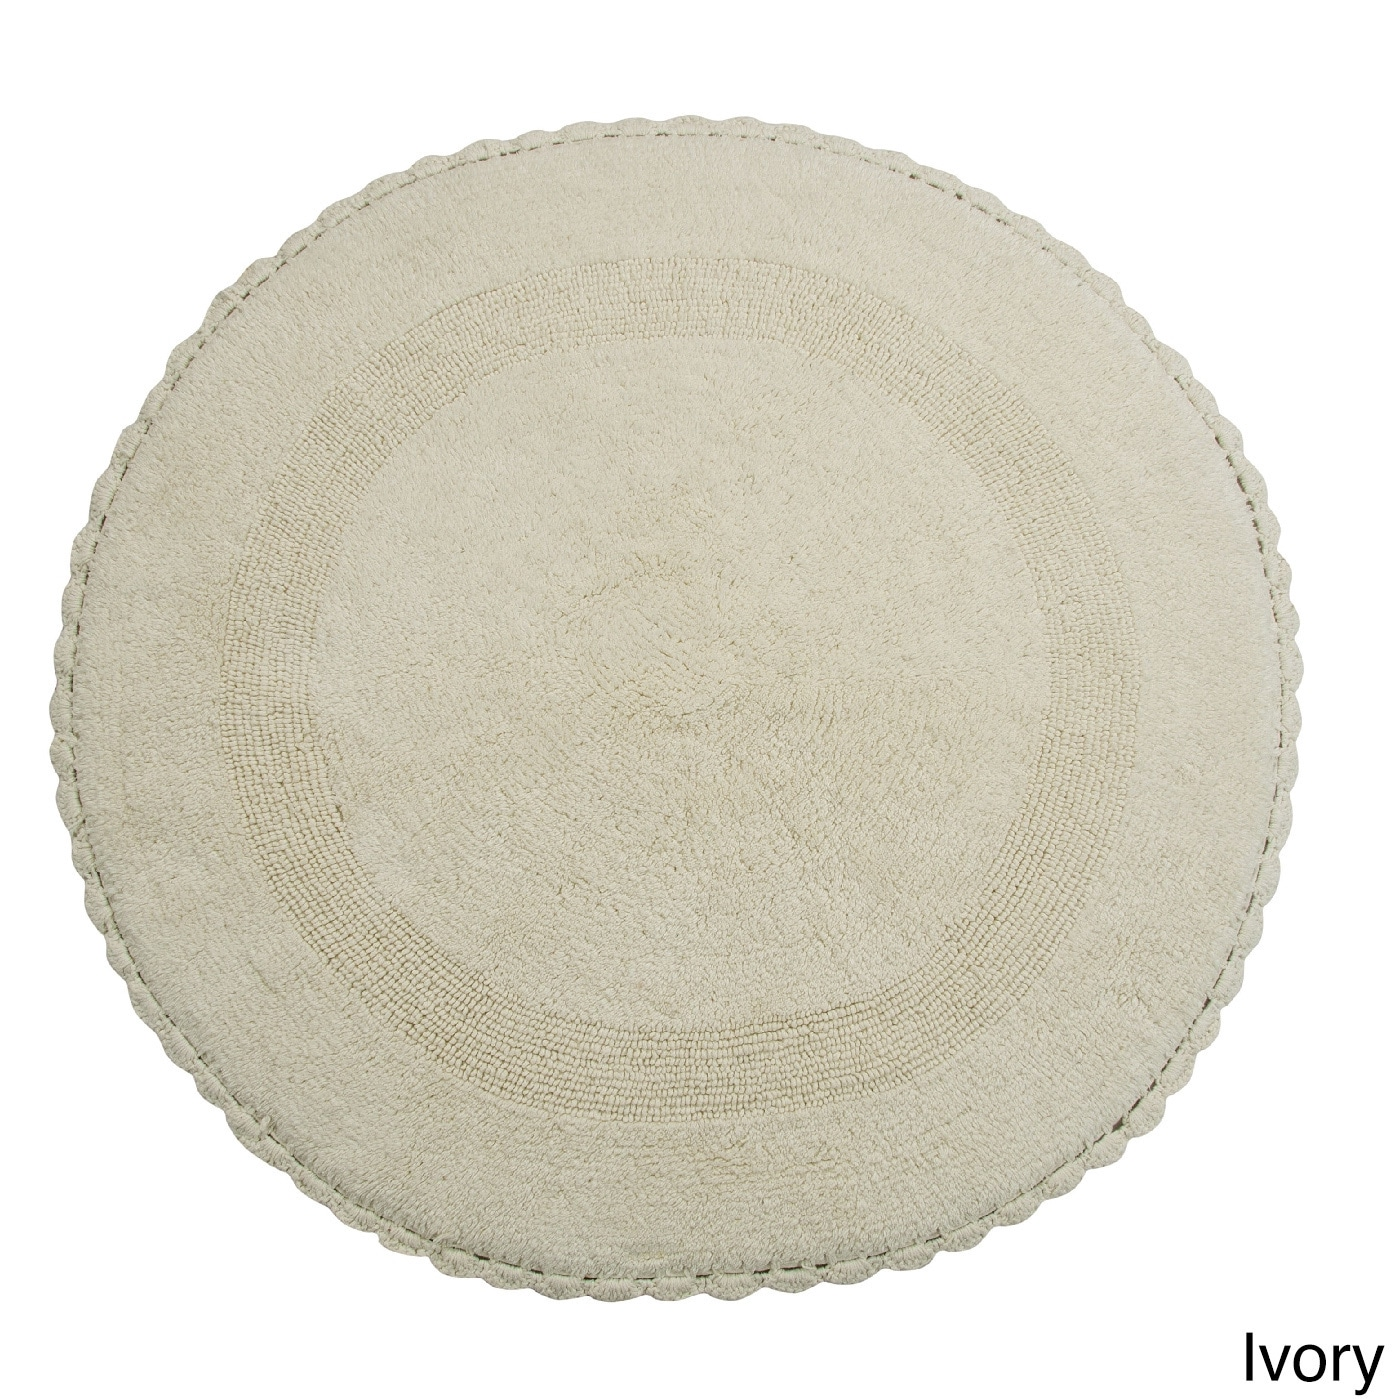 Saffron Fabs Bath Rug, Cotton 36 In Round, Reversible - D...